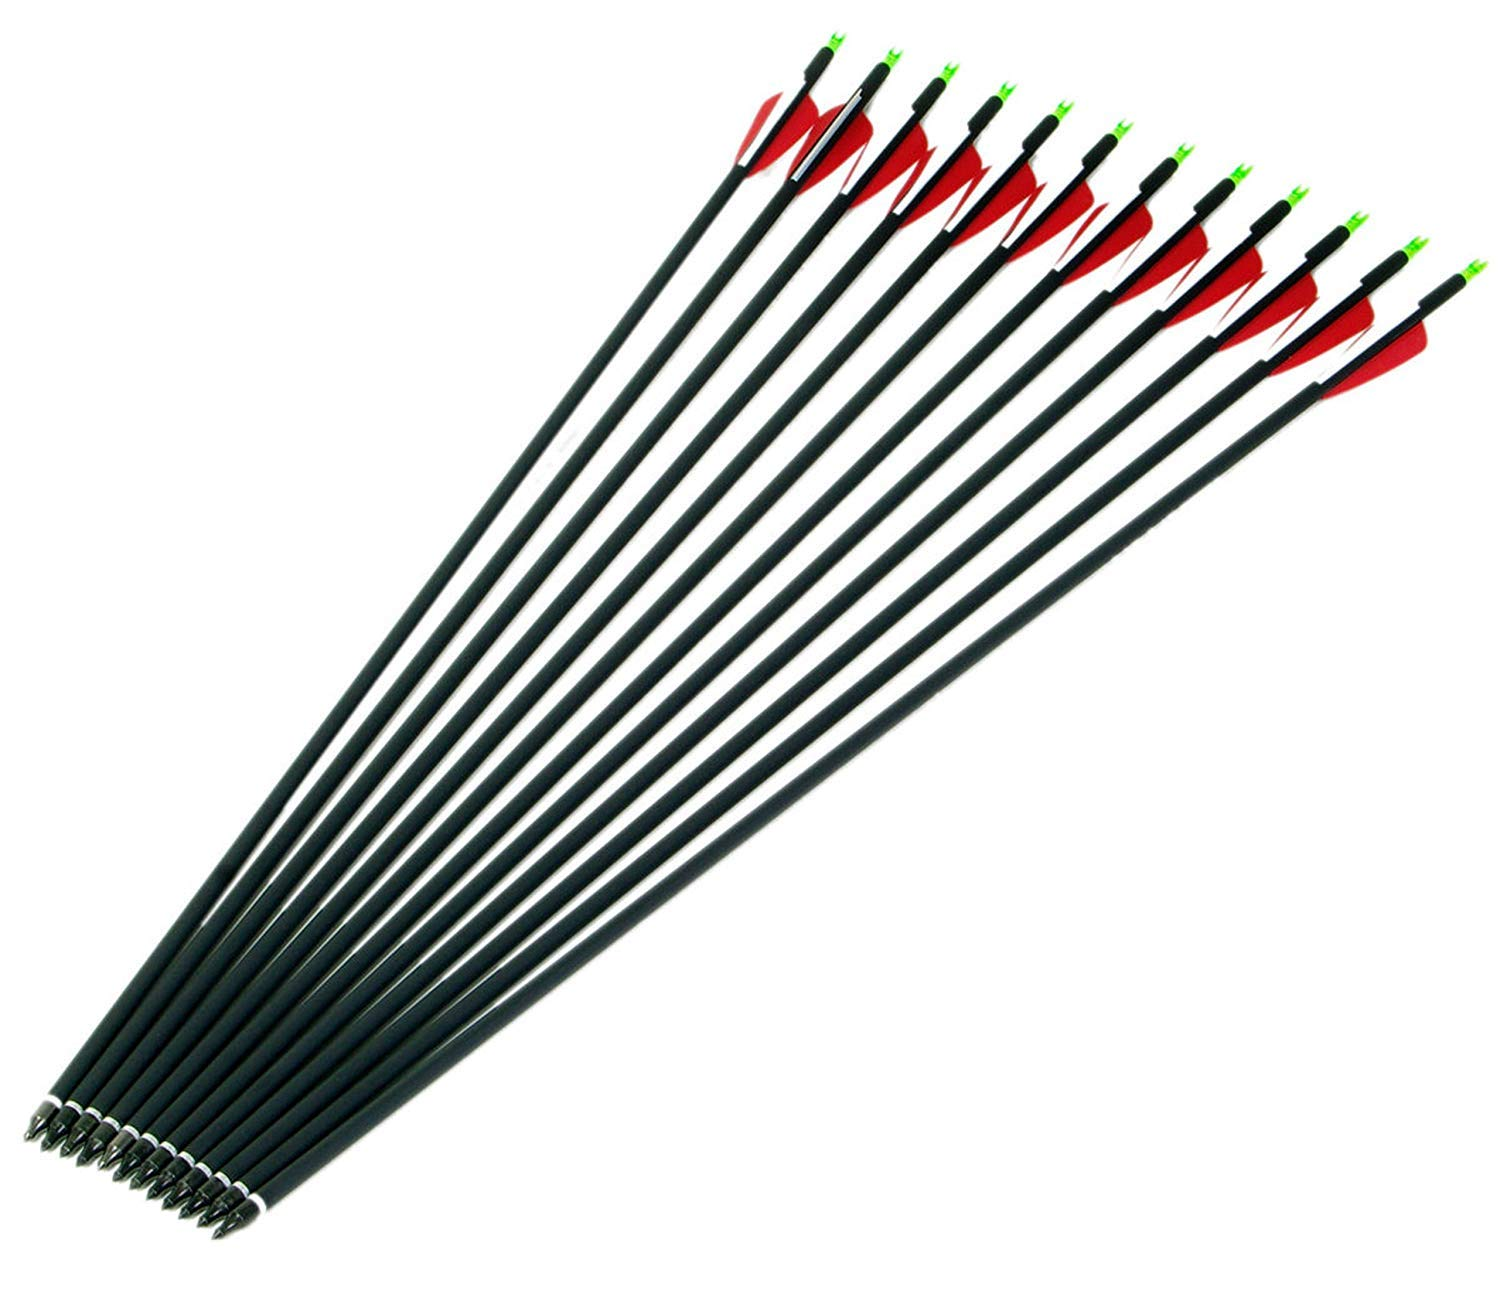 GPP Archery Carbon 30-Inch Targeting//Hunting Arrows Field Points Replaceable Tips 12 Pack Recuve Bow /& Compound Bow